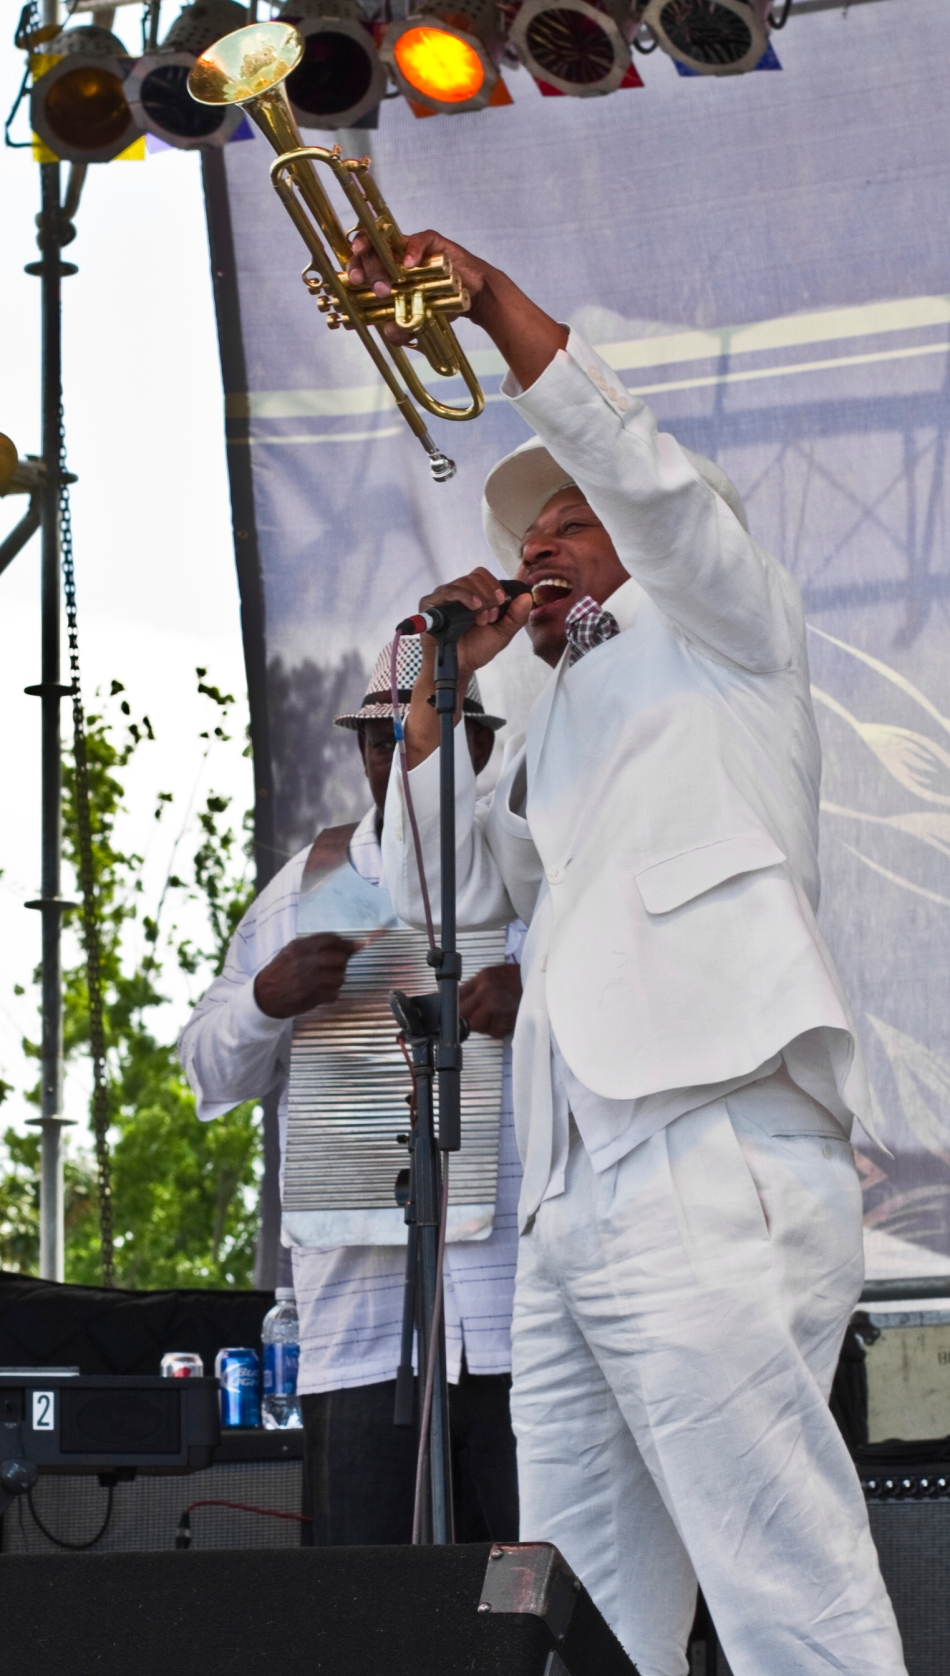 Kermit Ruffins performing at French Quarter Fest in New Orleans, LA April 13, 2013